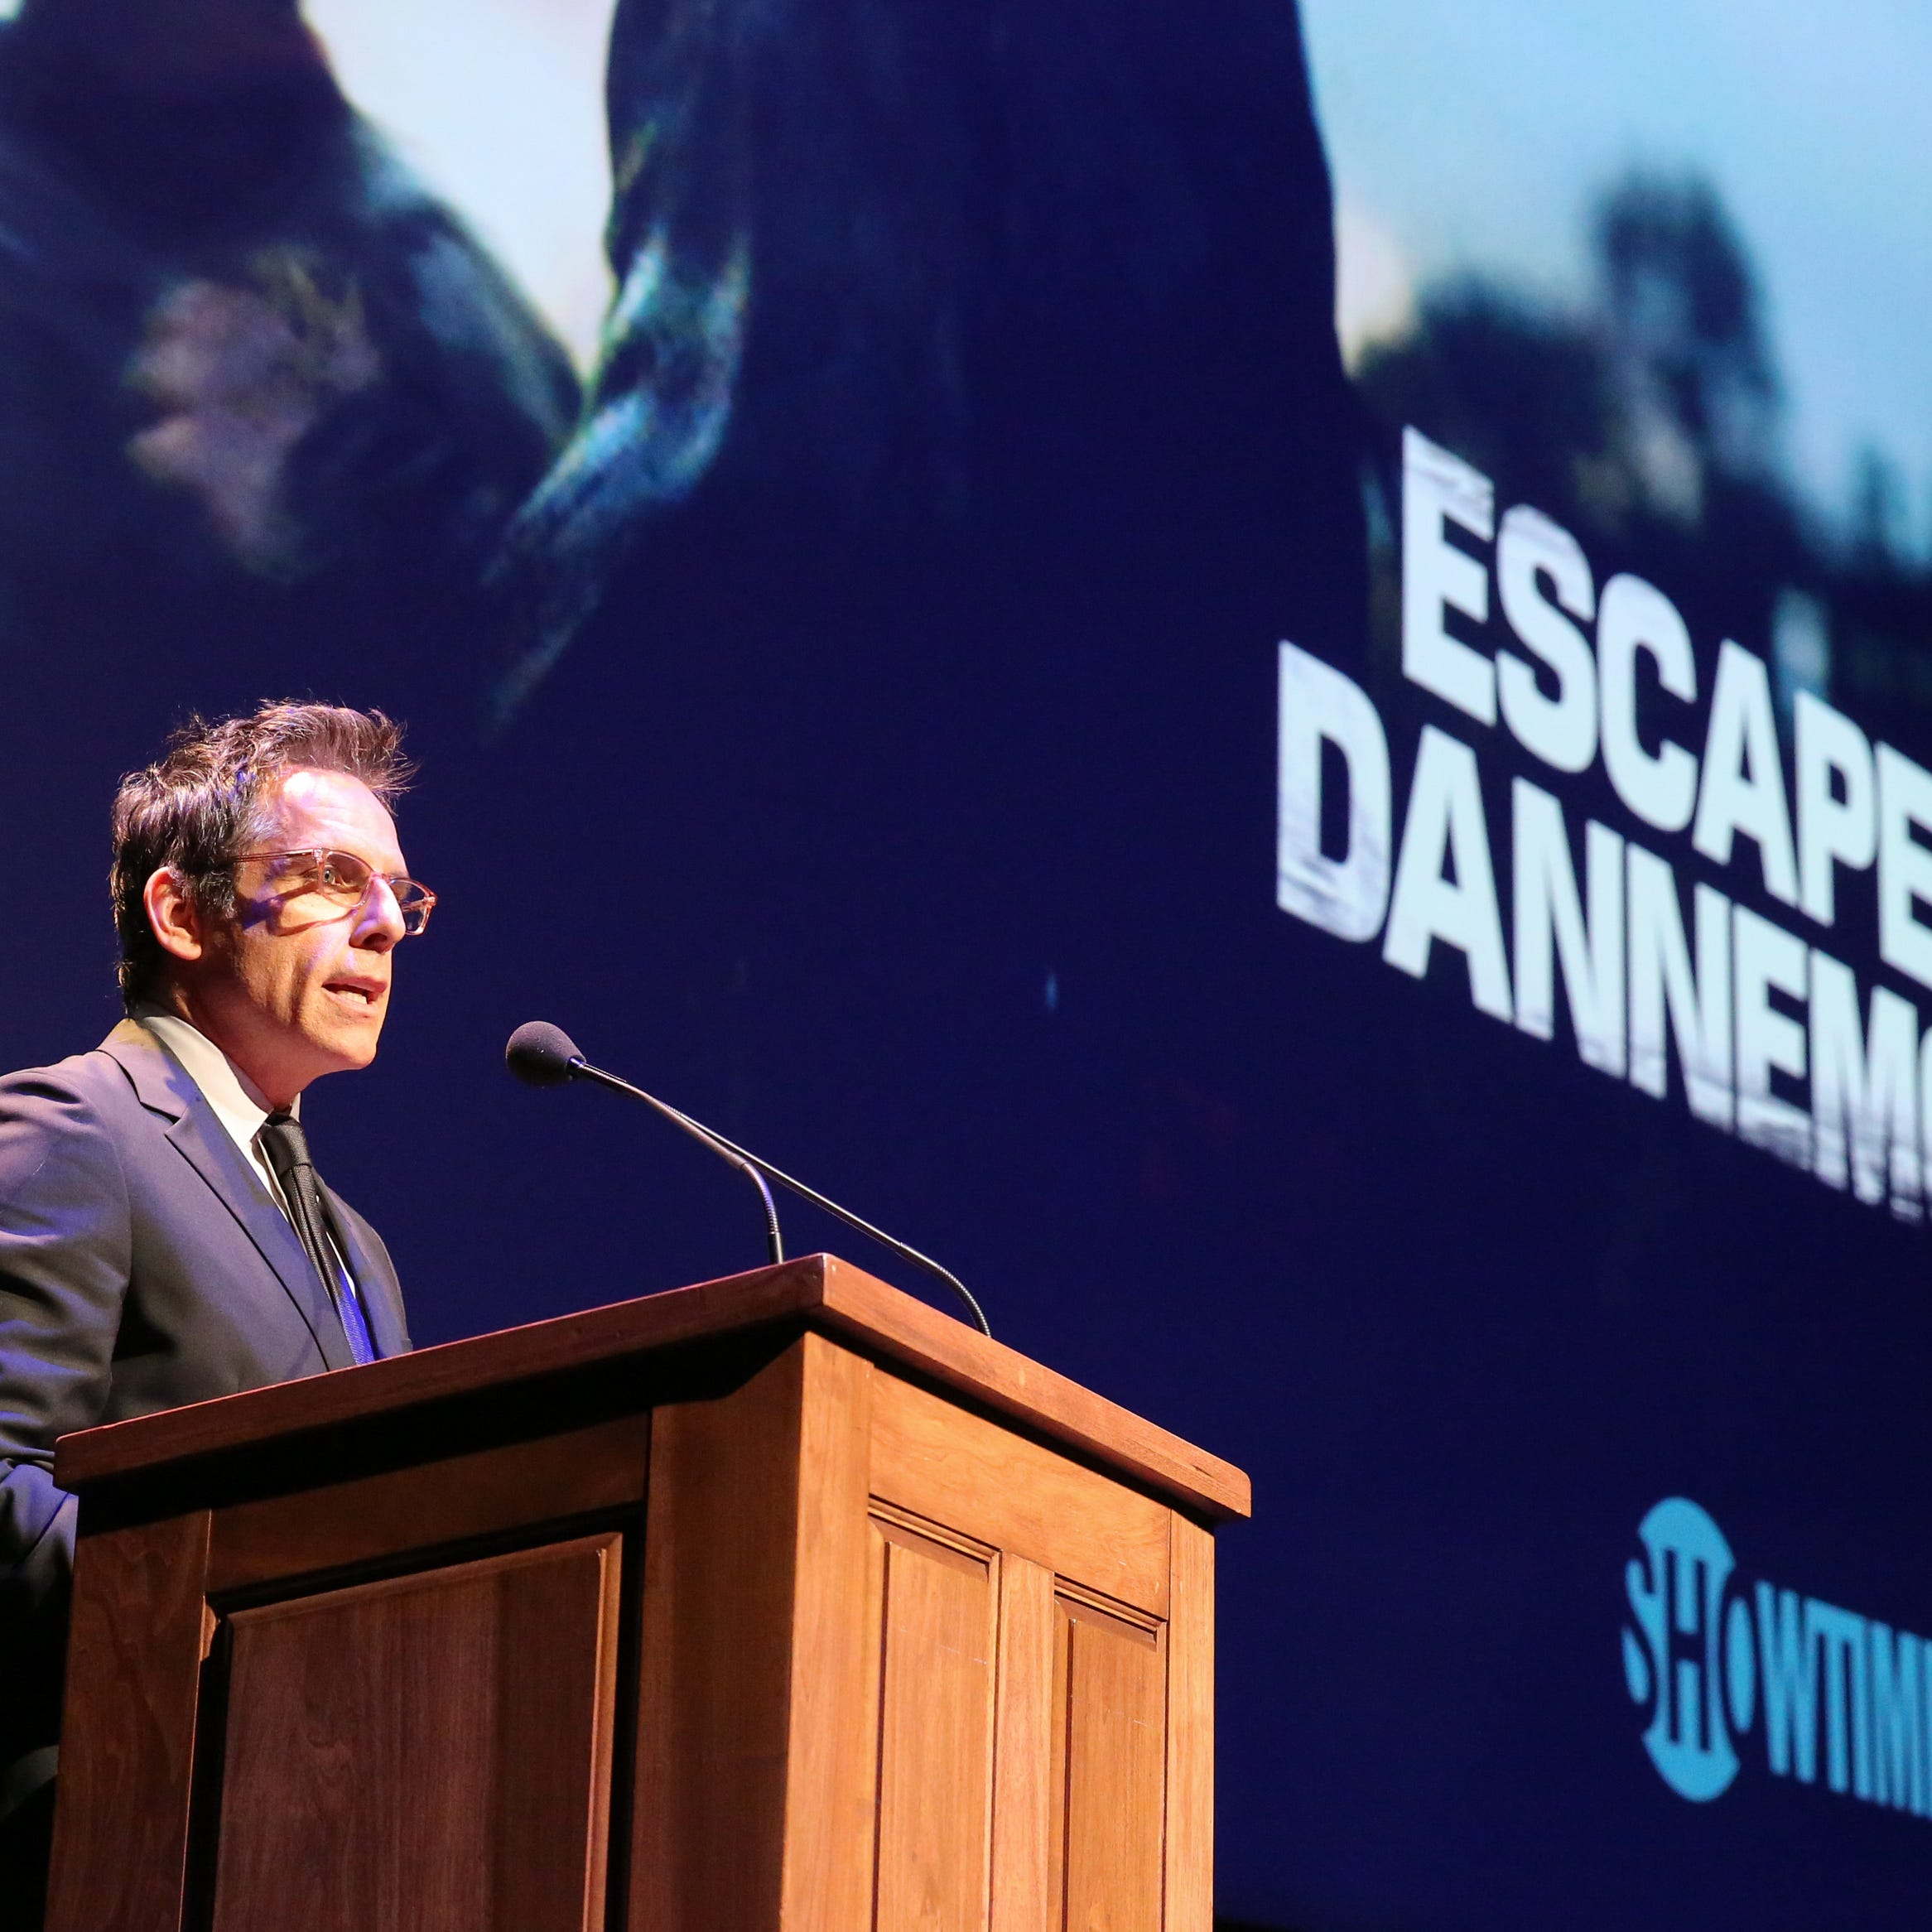 Ben Stiller talks about filming 'Escape at Dannemora' at Clinton Correctional Facility